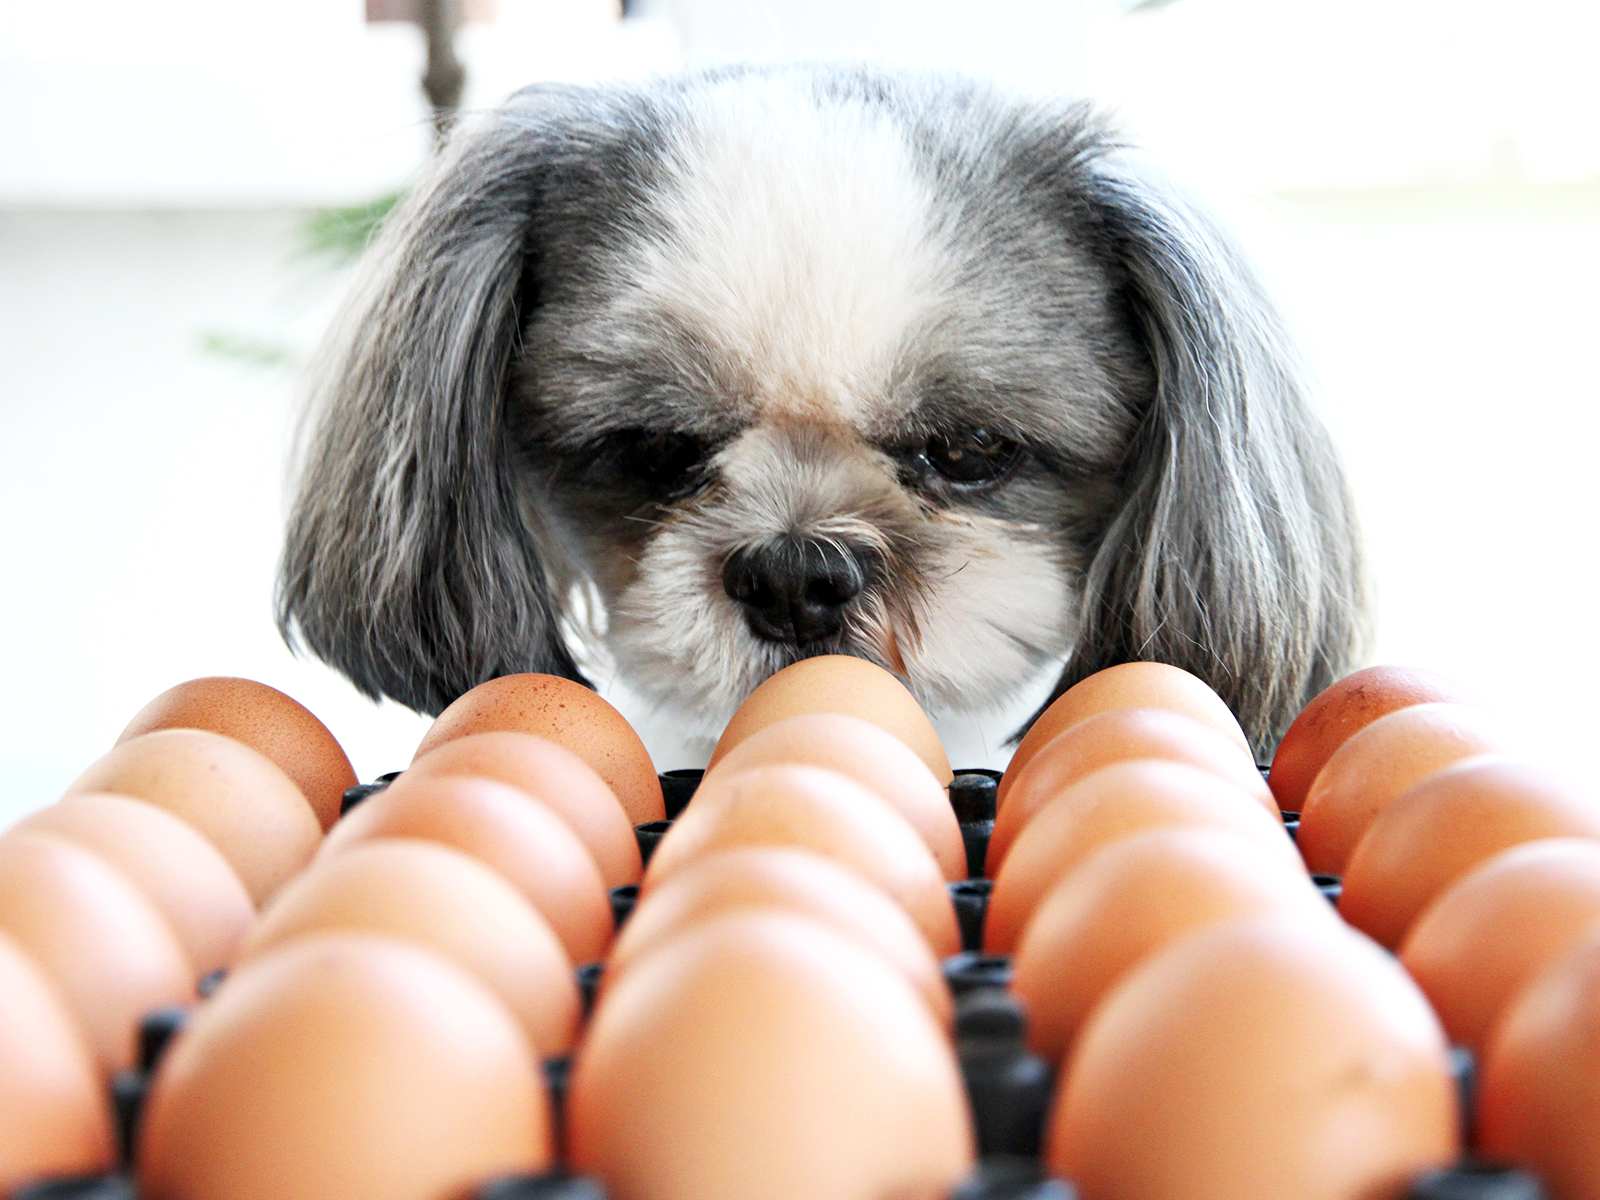 Viral Egg Challenge Proves Dogs Can Be Man's Gentlest Friend